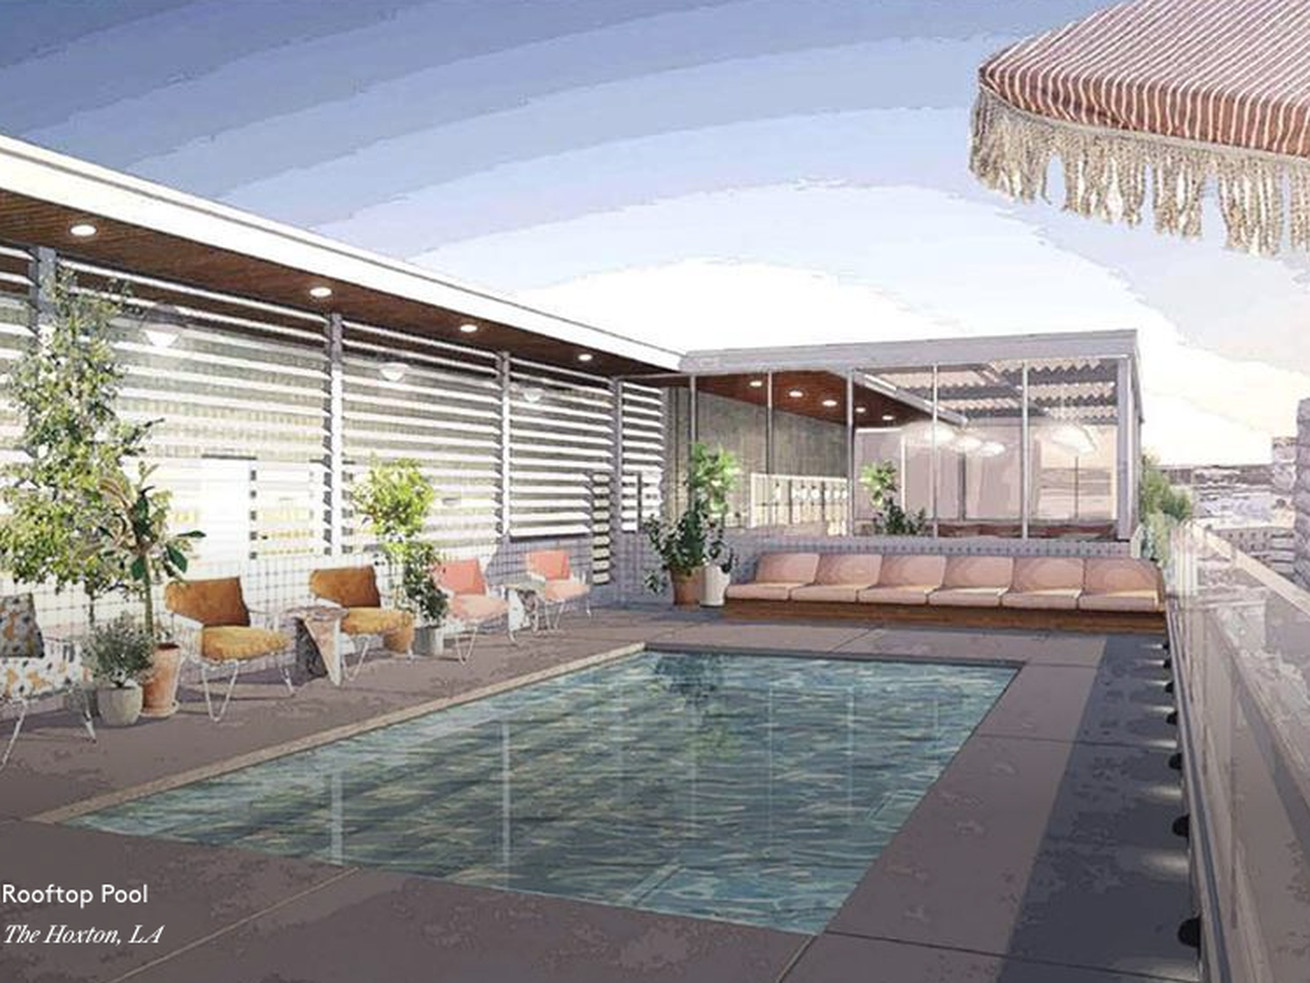 A rendering for the rooftop pool area